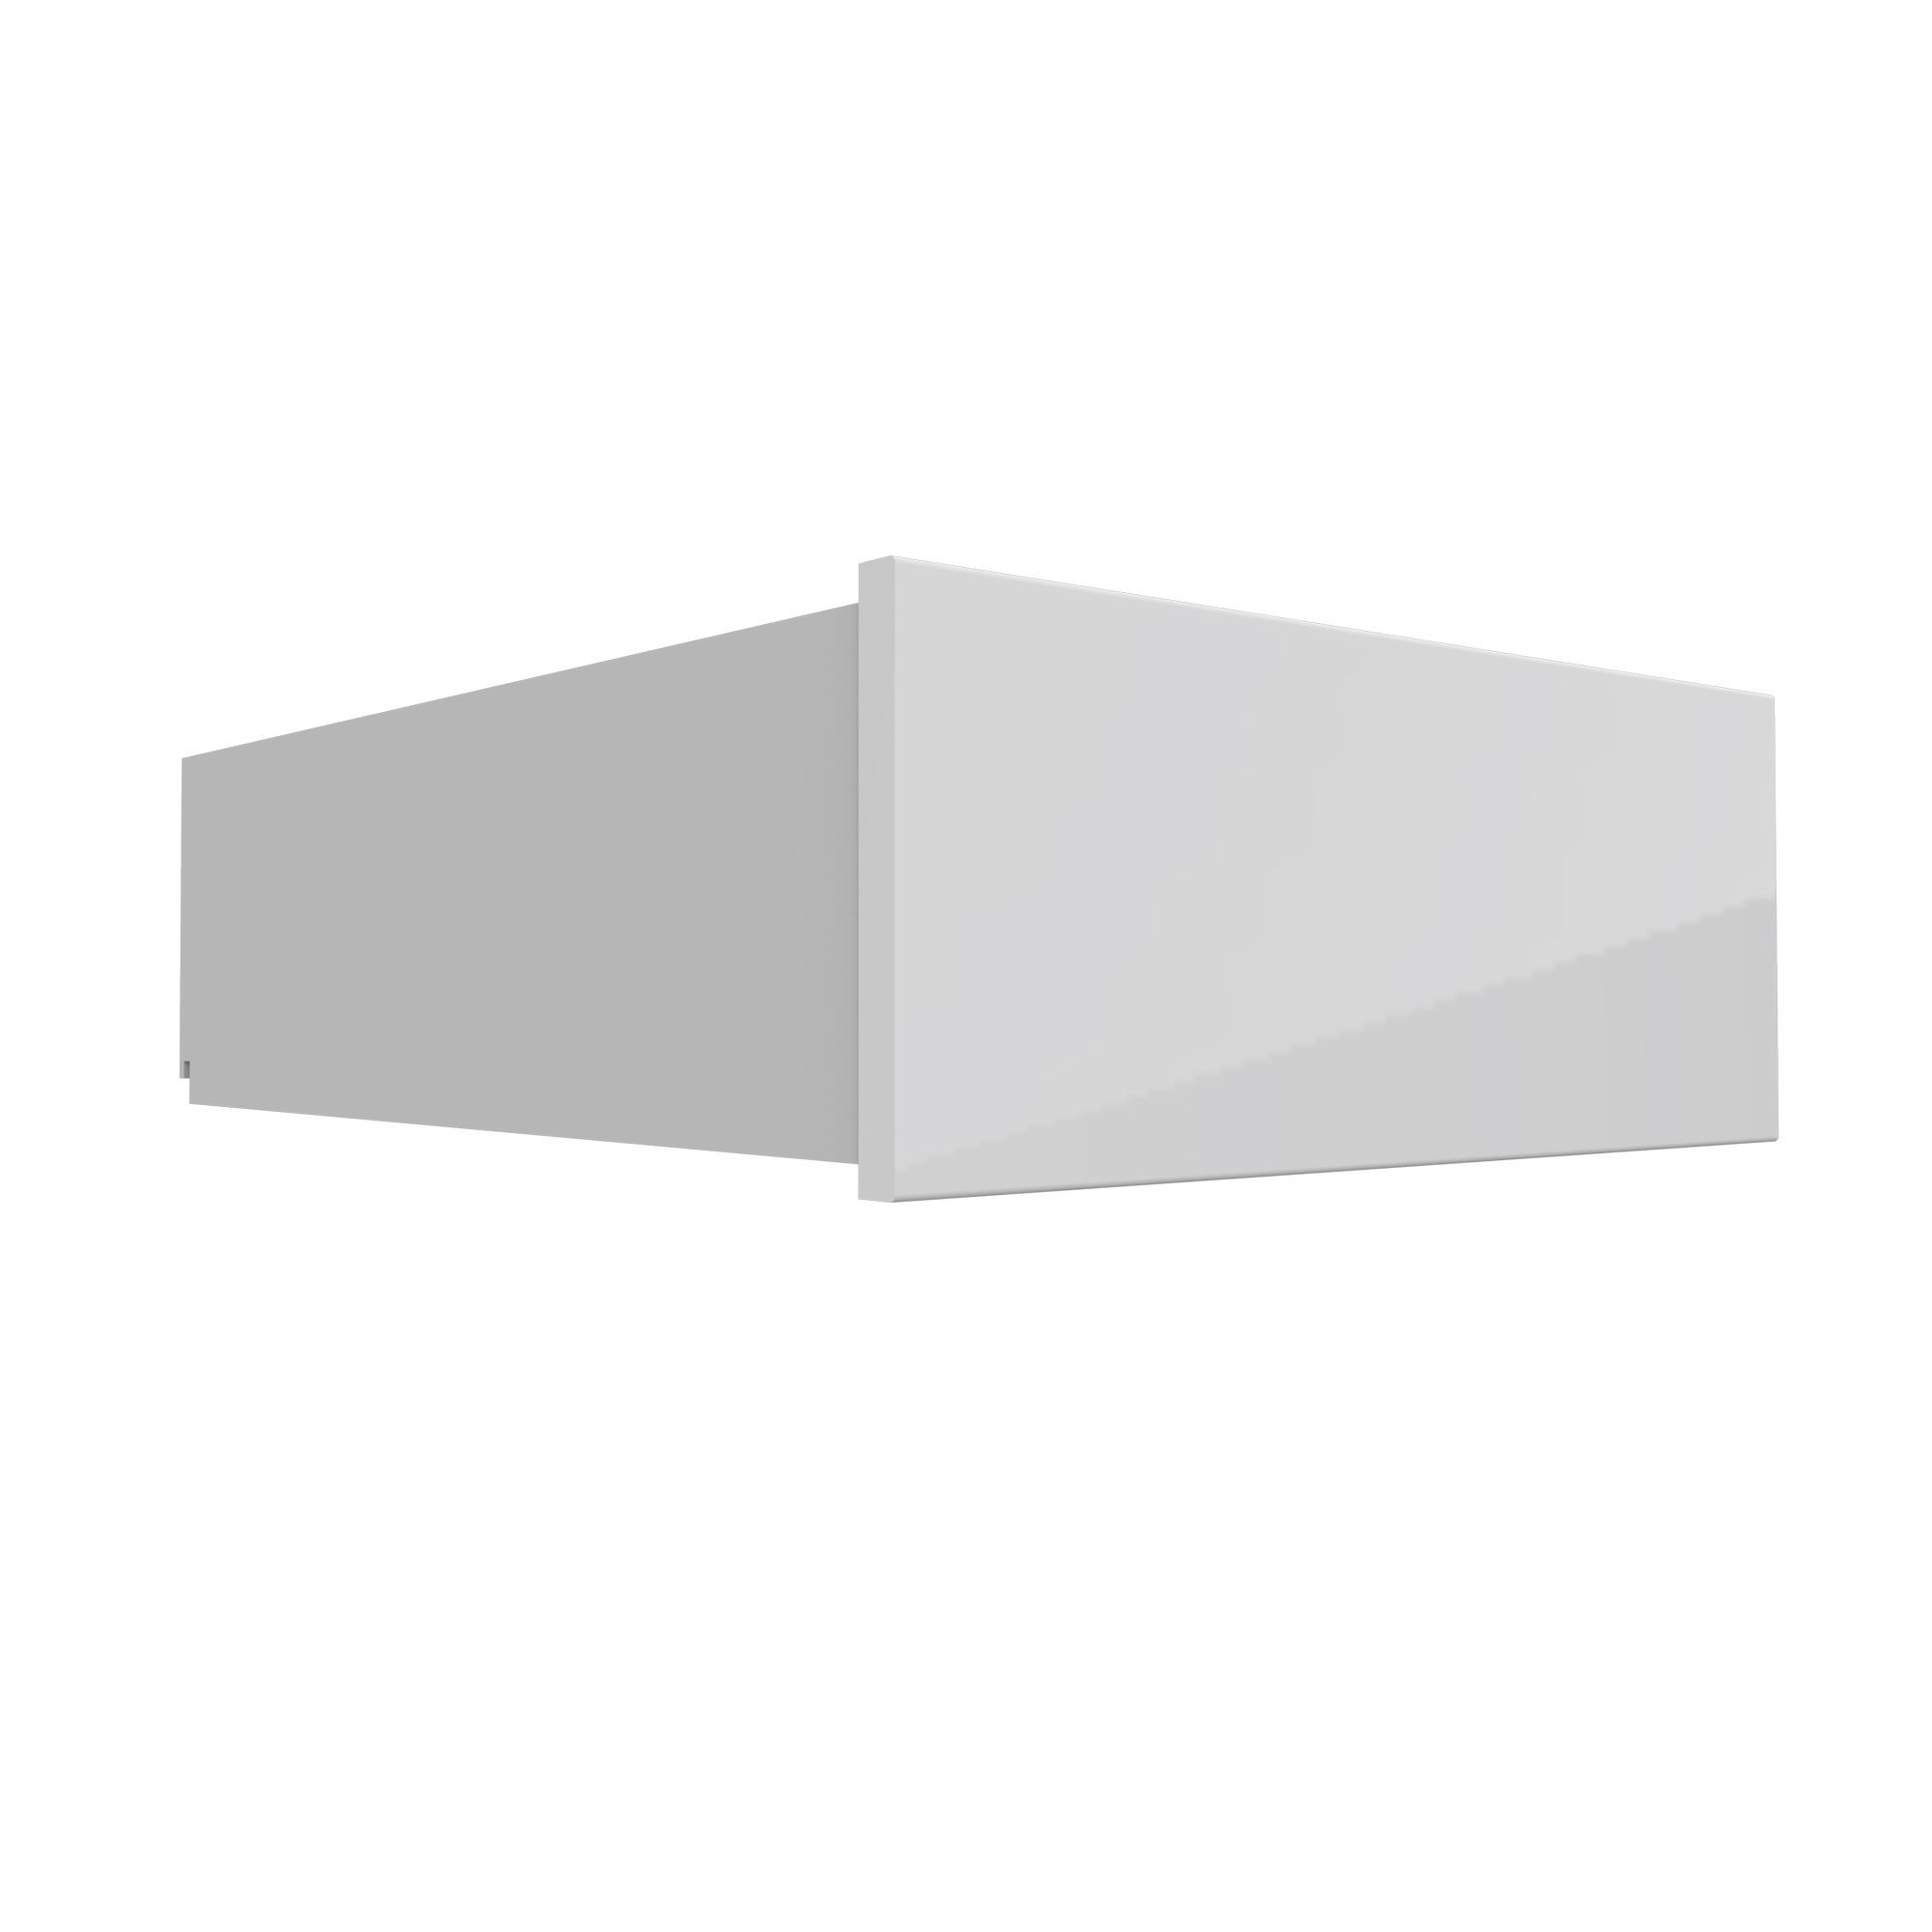 Darwin Modular White & Matt Internal Drawer (h)158mm (w)500mm (d)566mm